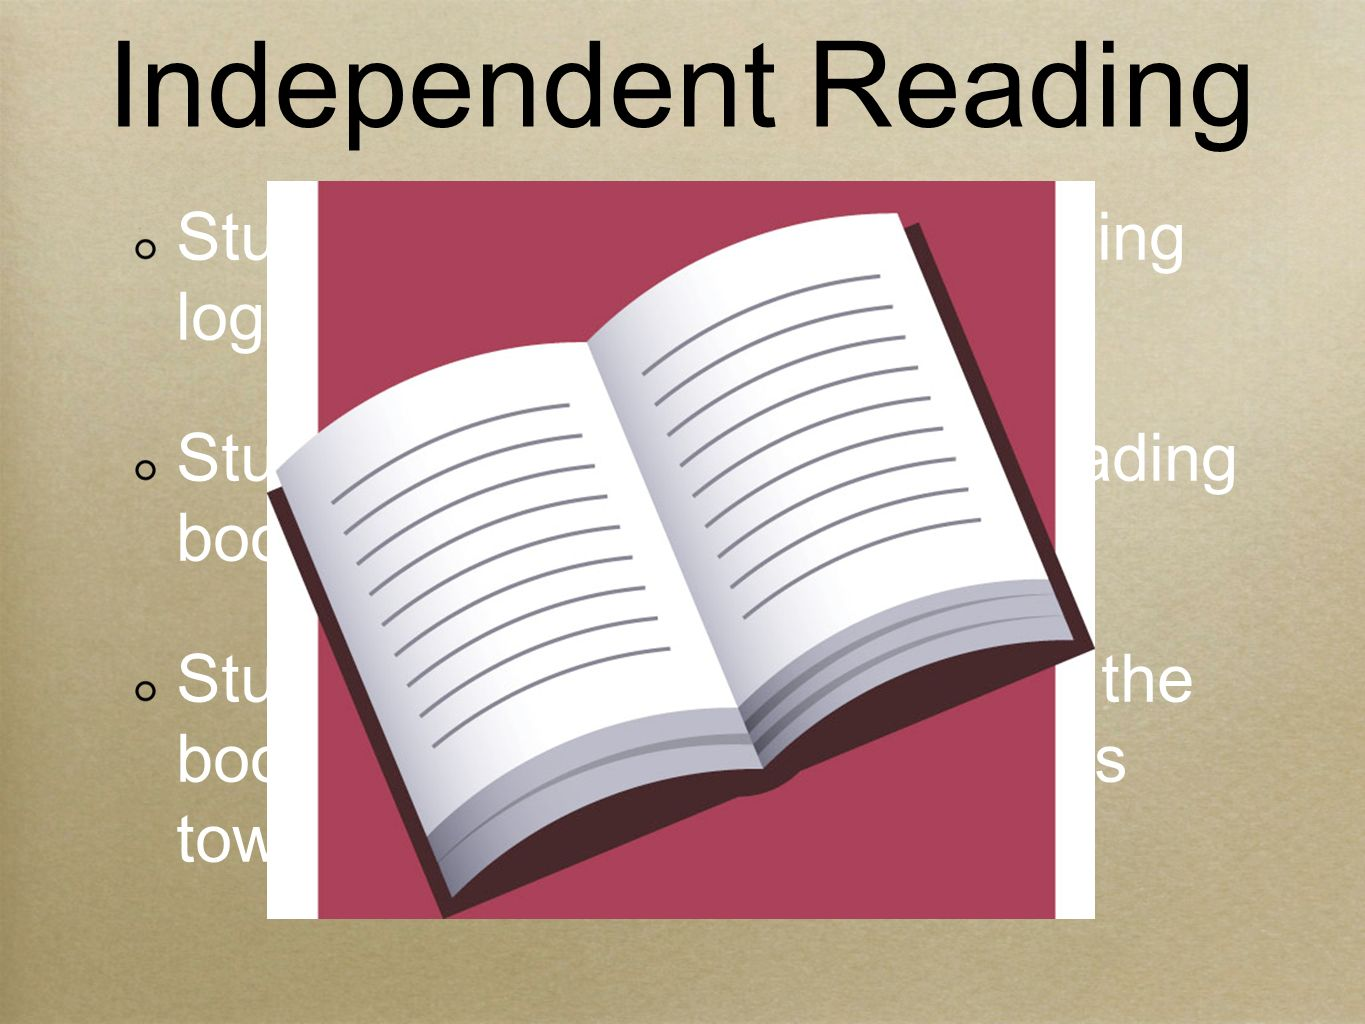 Students must complete a reading log entry five nights per week.